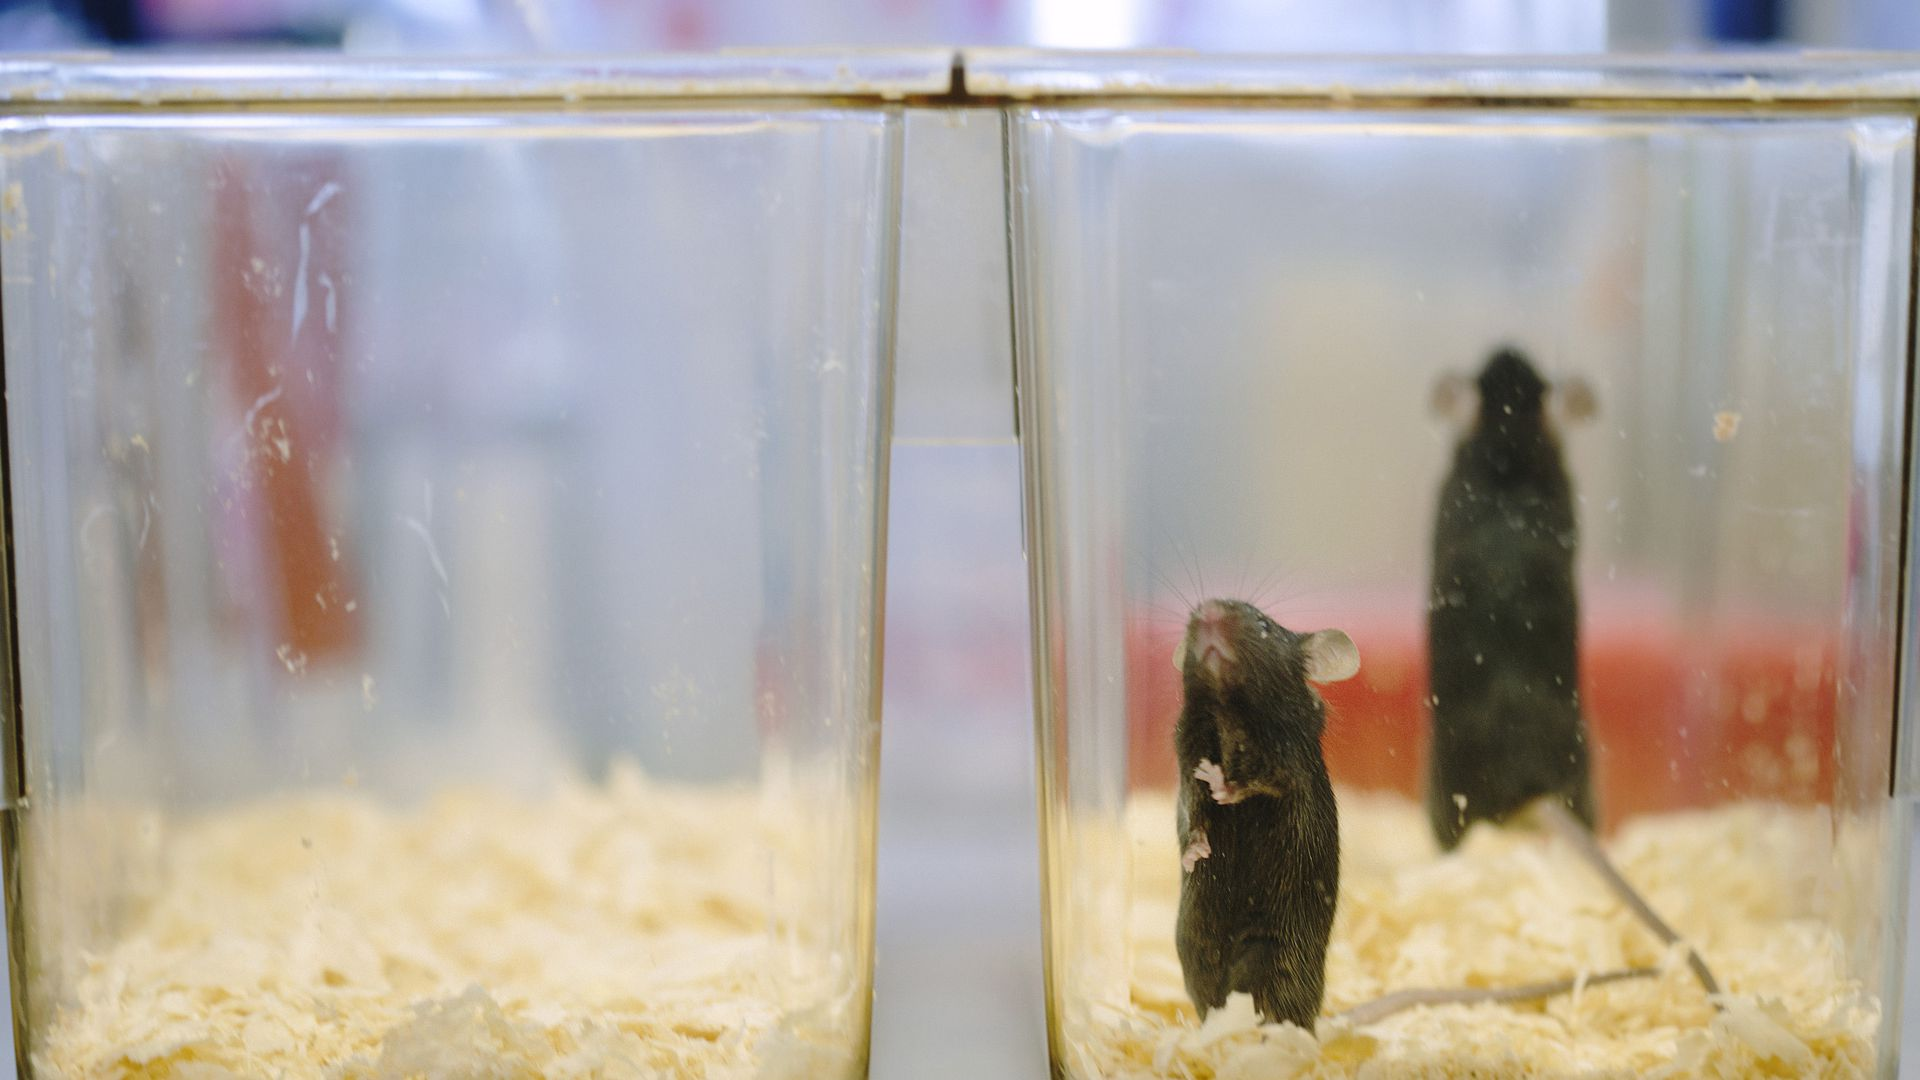 In this image, two mice stand in a clear plastic container with hay on the bottom.